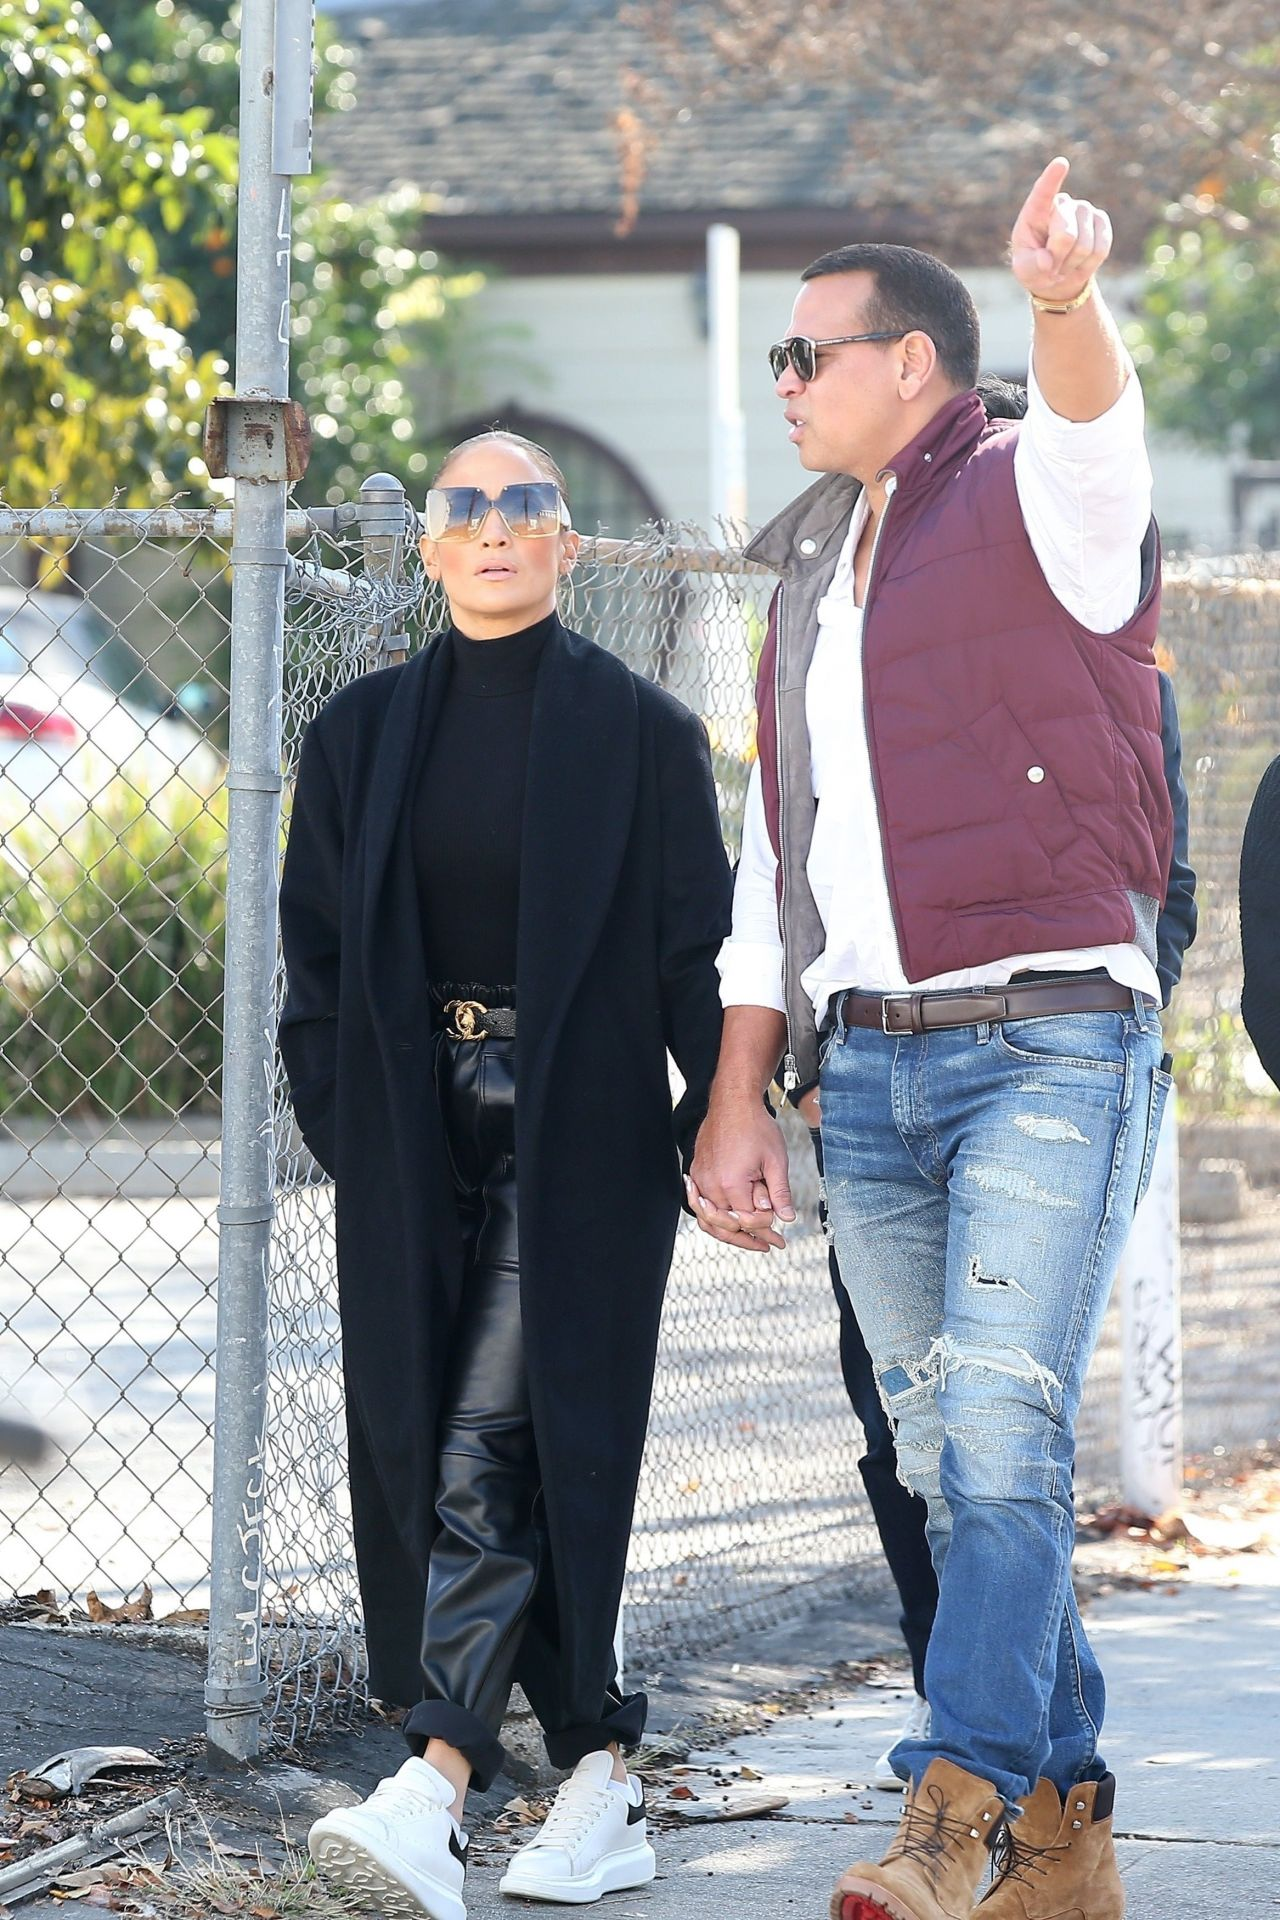 jennifer-lopez-and-alex-rodriguez-real-estate-shopping-in-hollywood-12-29-2019-5